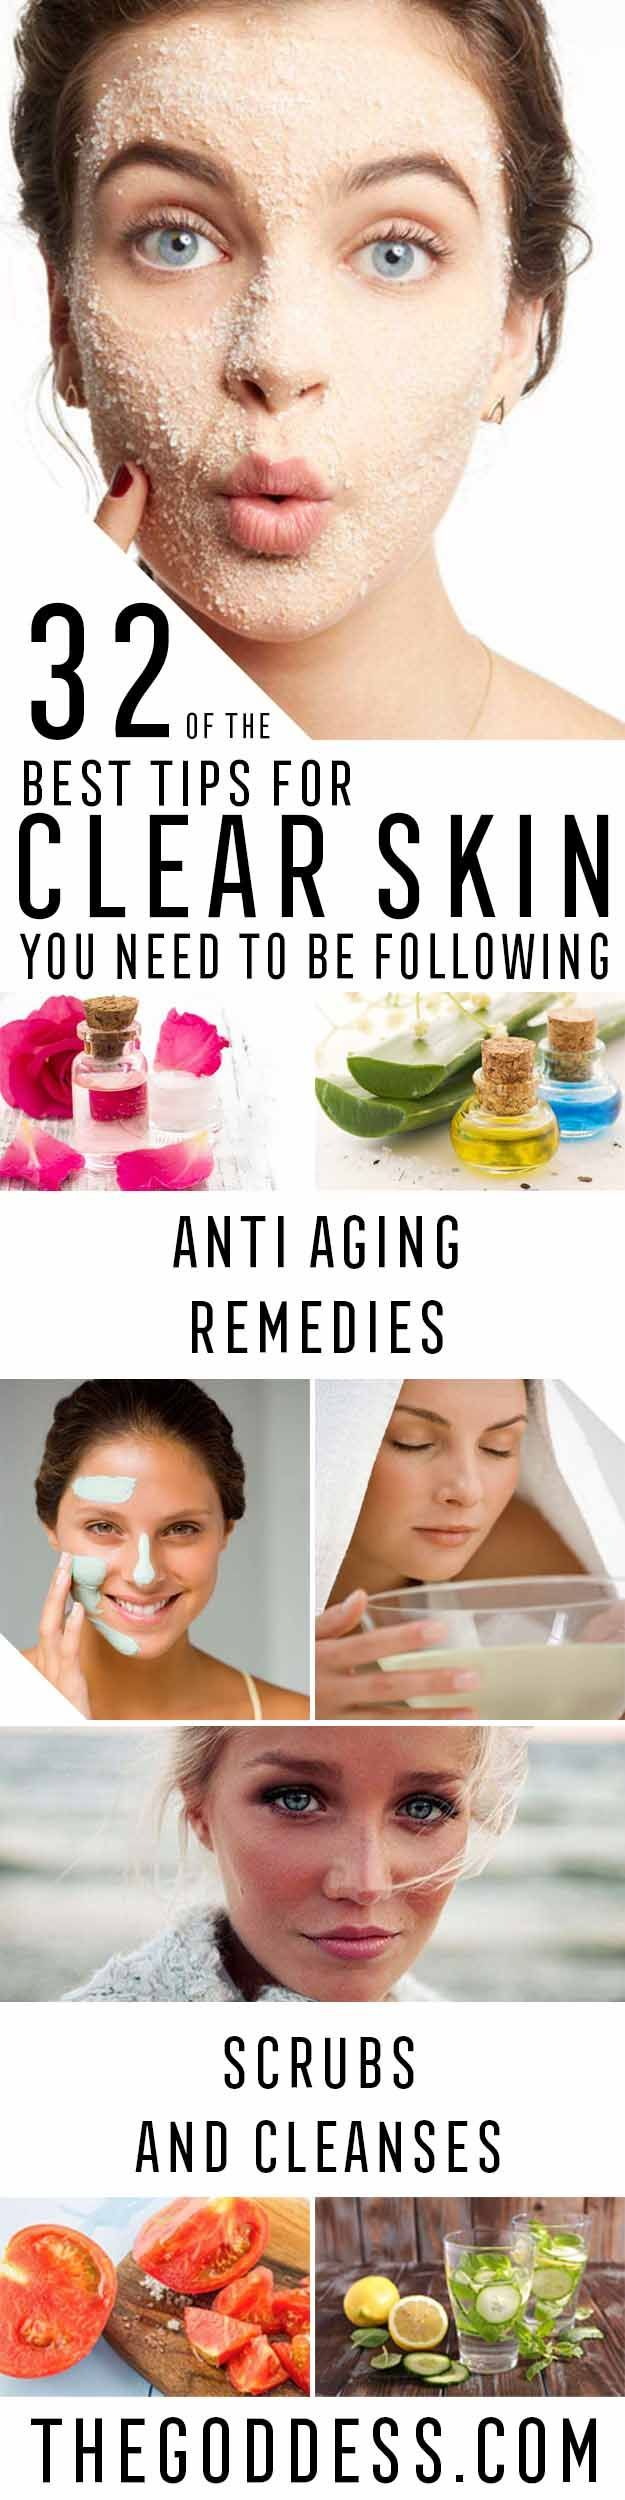 Best Tips for Clear Skin You Need To Be Following - Check Out These Step By Step Tips and Tricks For Clear Skin.  Are You Looking for Tips For Acne Scars or Home Remedies or Products For Beauty and Skincare?  These Are The Best Ideas And Tutorials For How To Use Essential Oils, Facials, and Cleansers to Get Clear Skin.  These Cover Blackheads, Acne Scars, And Big Pores and They Are All DIY - thegoddess.com/best-tips-clear-skin